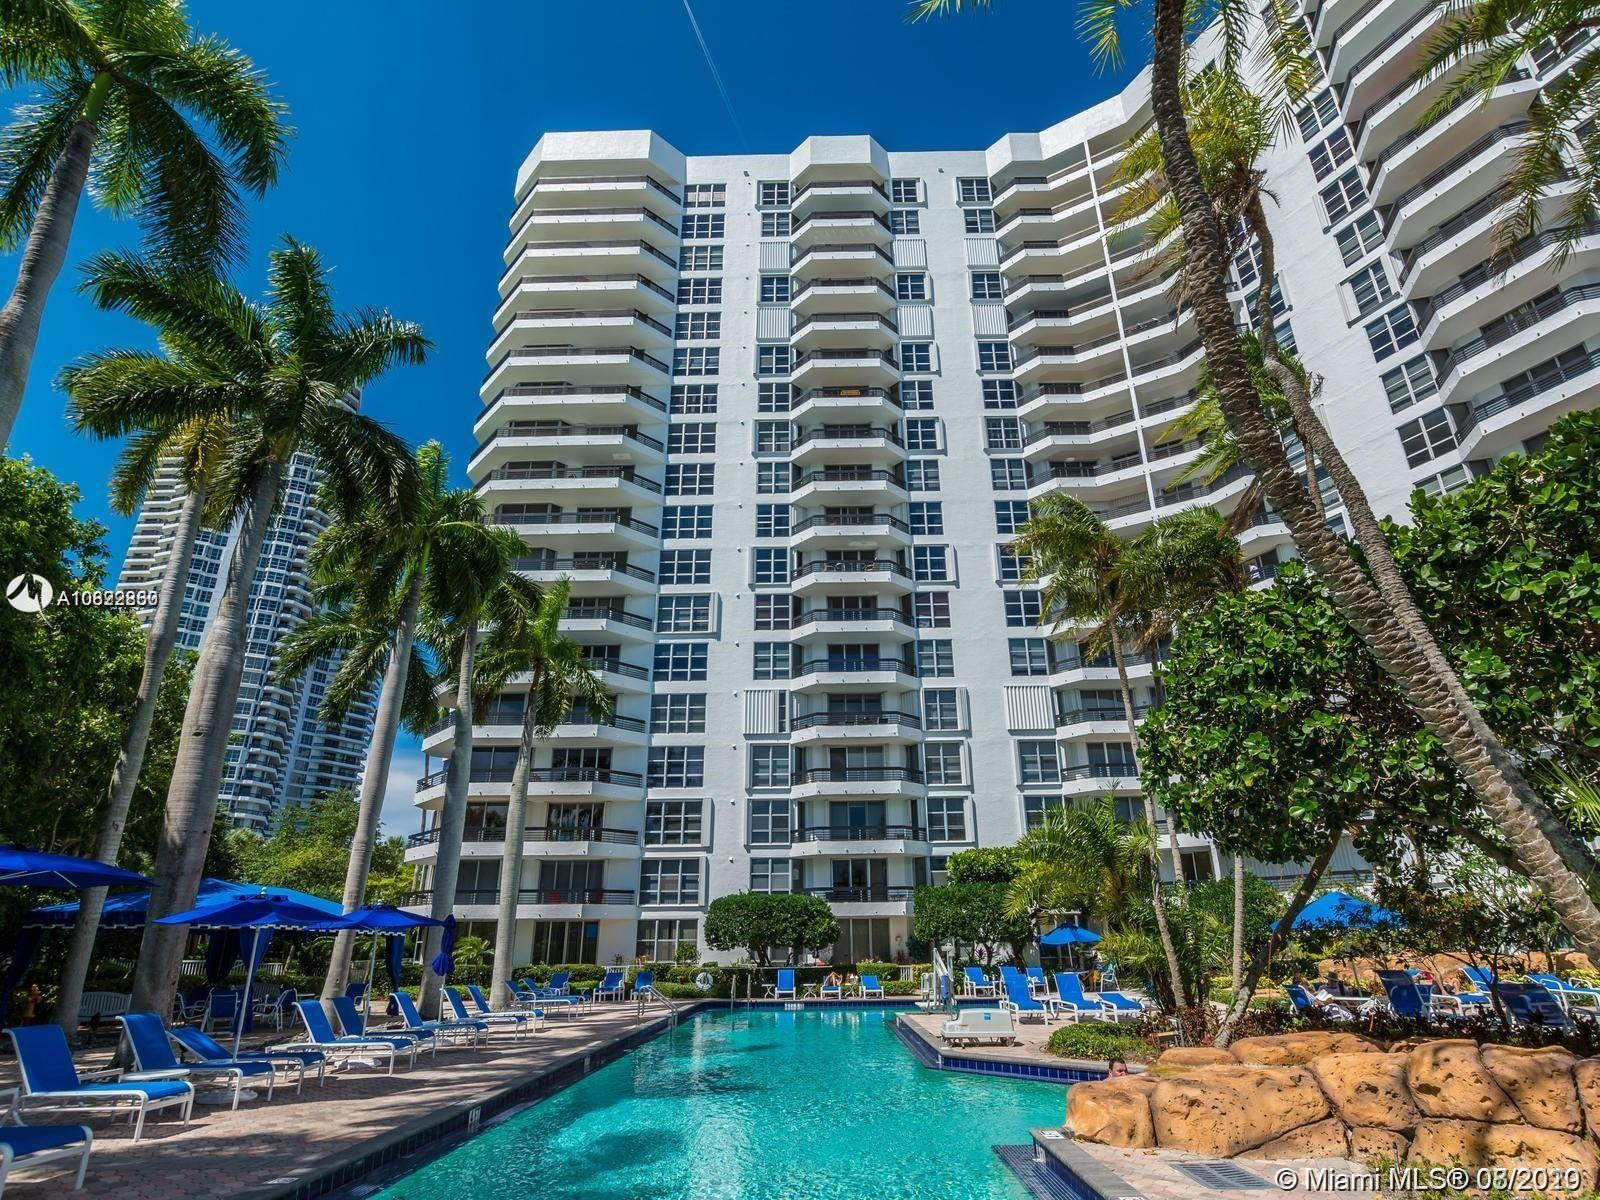 Mystic Pointe Tower 300 #1710 - 3600 MYSTIC POINTE DR #1710, Aventura, FL 33180